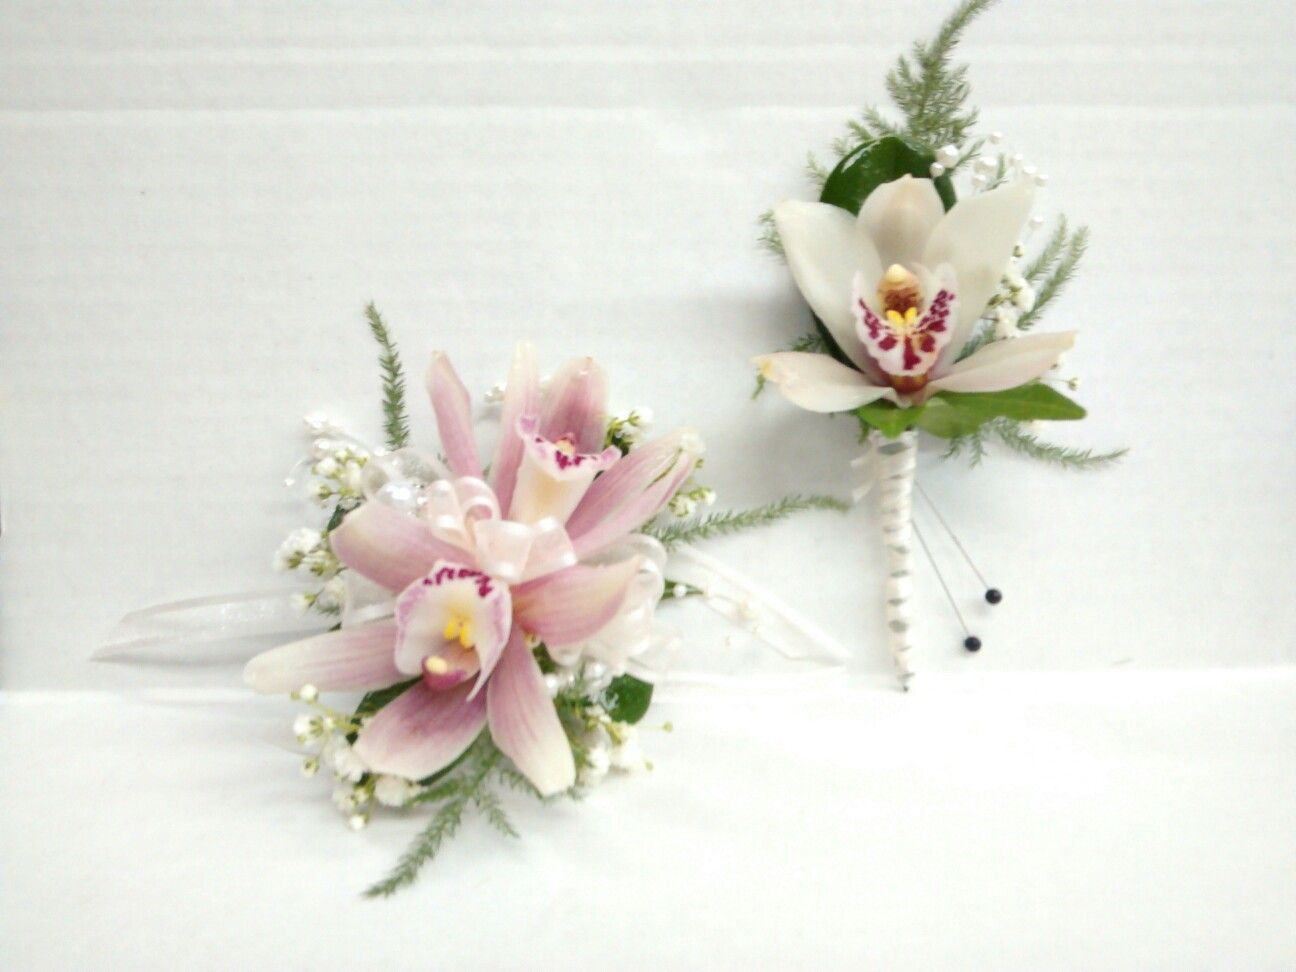 Cymbidium Orchid Wrist Corsages: Mini Pink Cymbidium Orchid Corsage And Boutonniere With